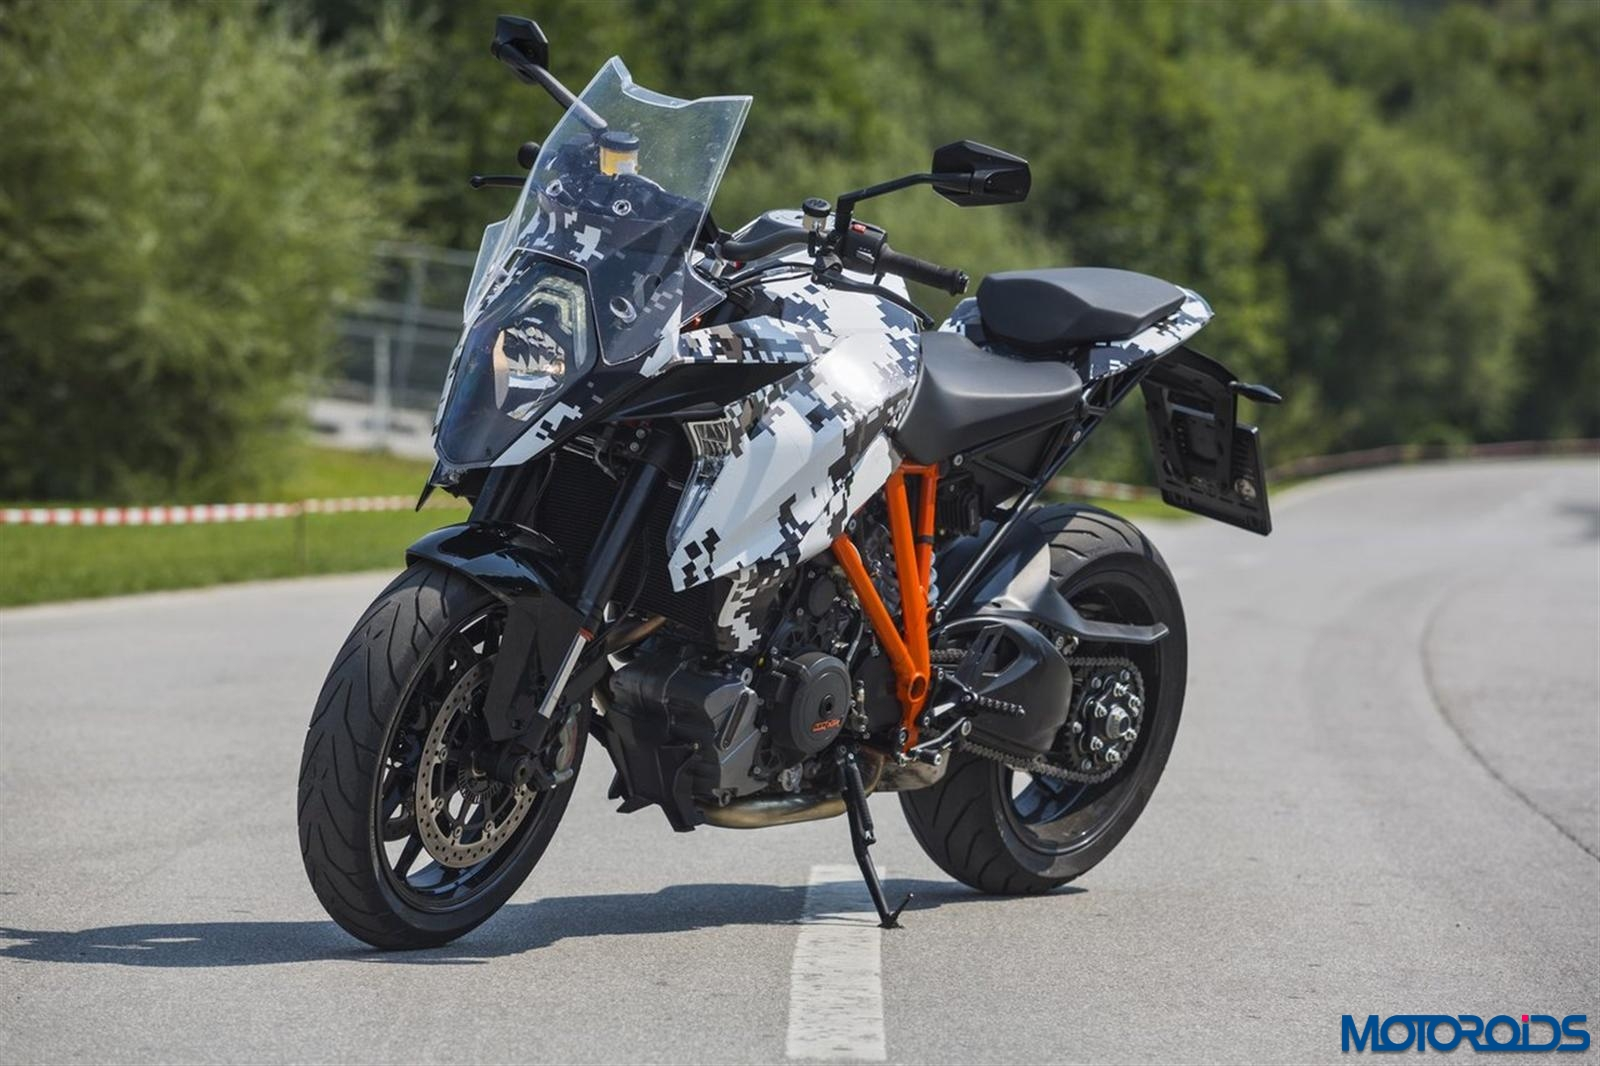 ktm 1290 super duke gt first official photos revealed motoroids. Black Bedroom Furniture Sets. Home Design Ideas